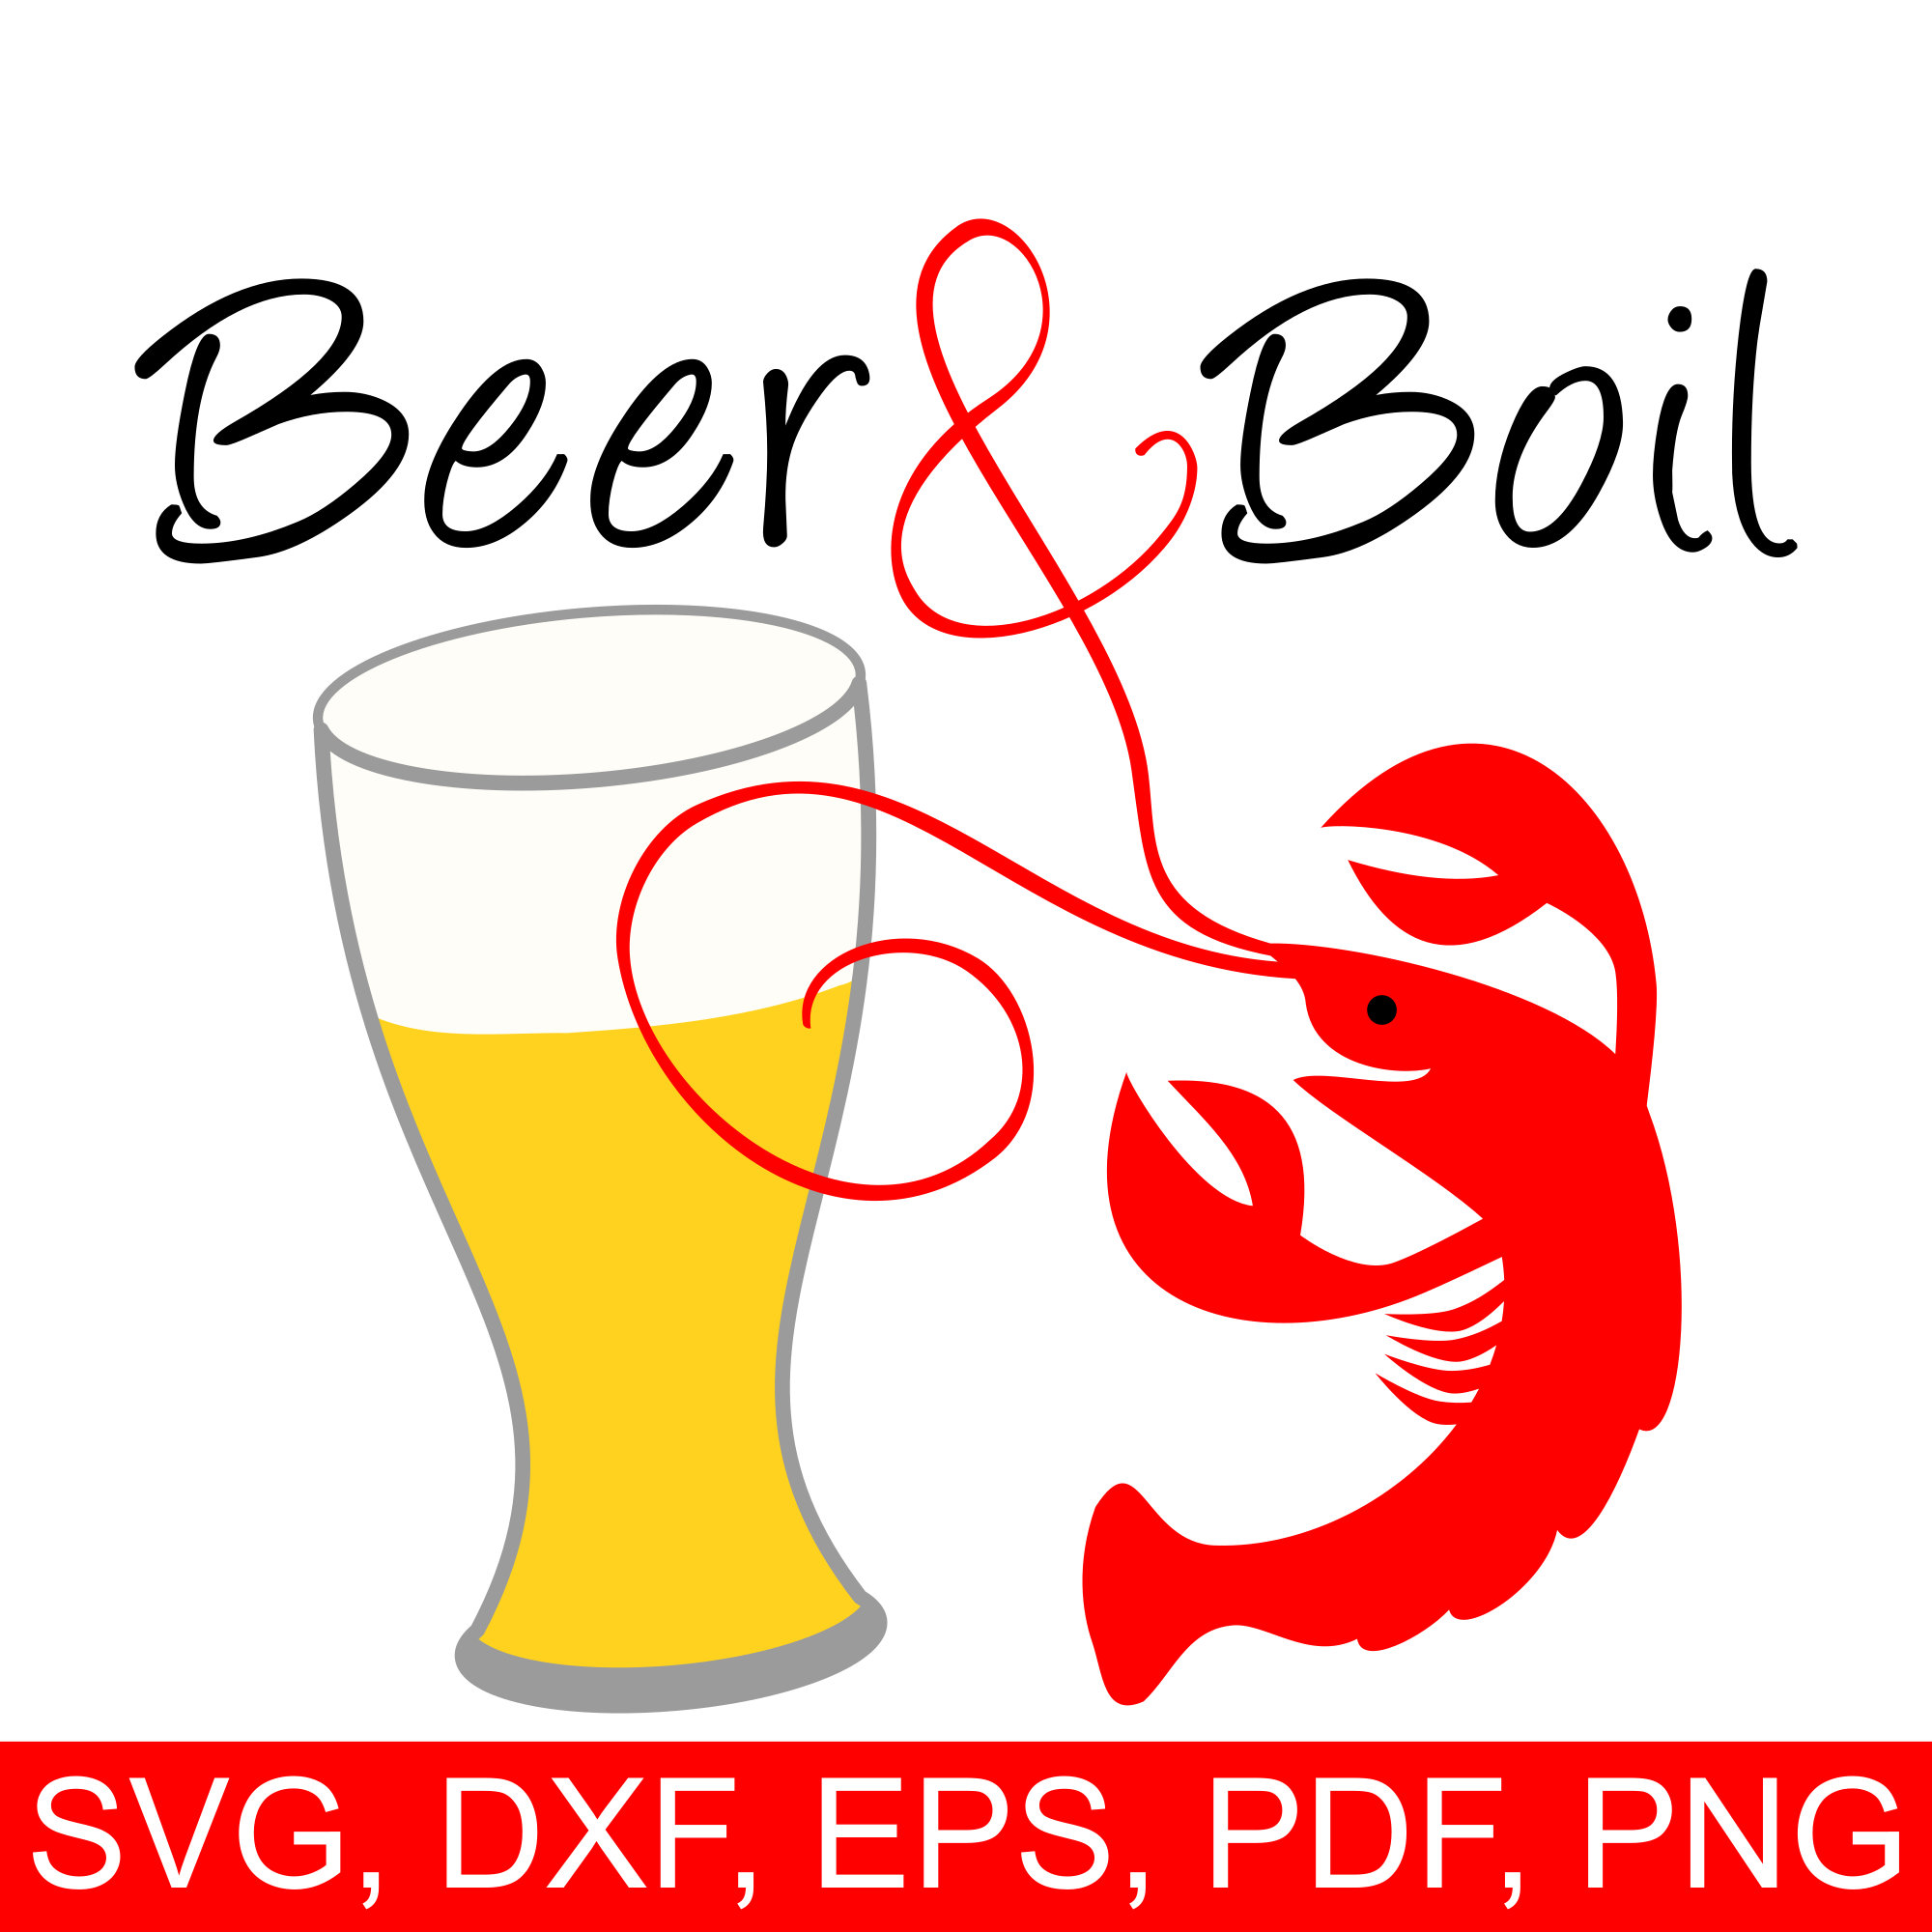 Crawfish Beer & Boil SVG File a very happy crawfish and a fresh beer.